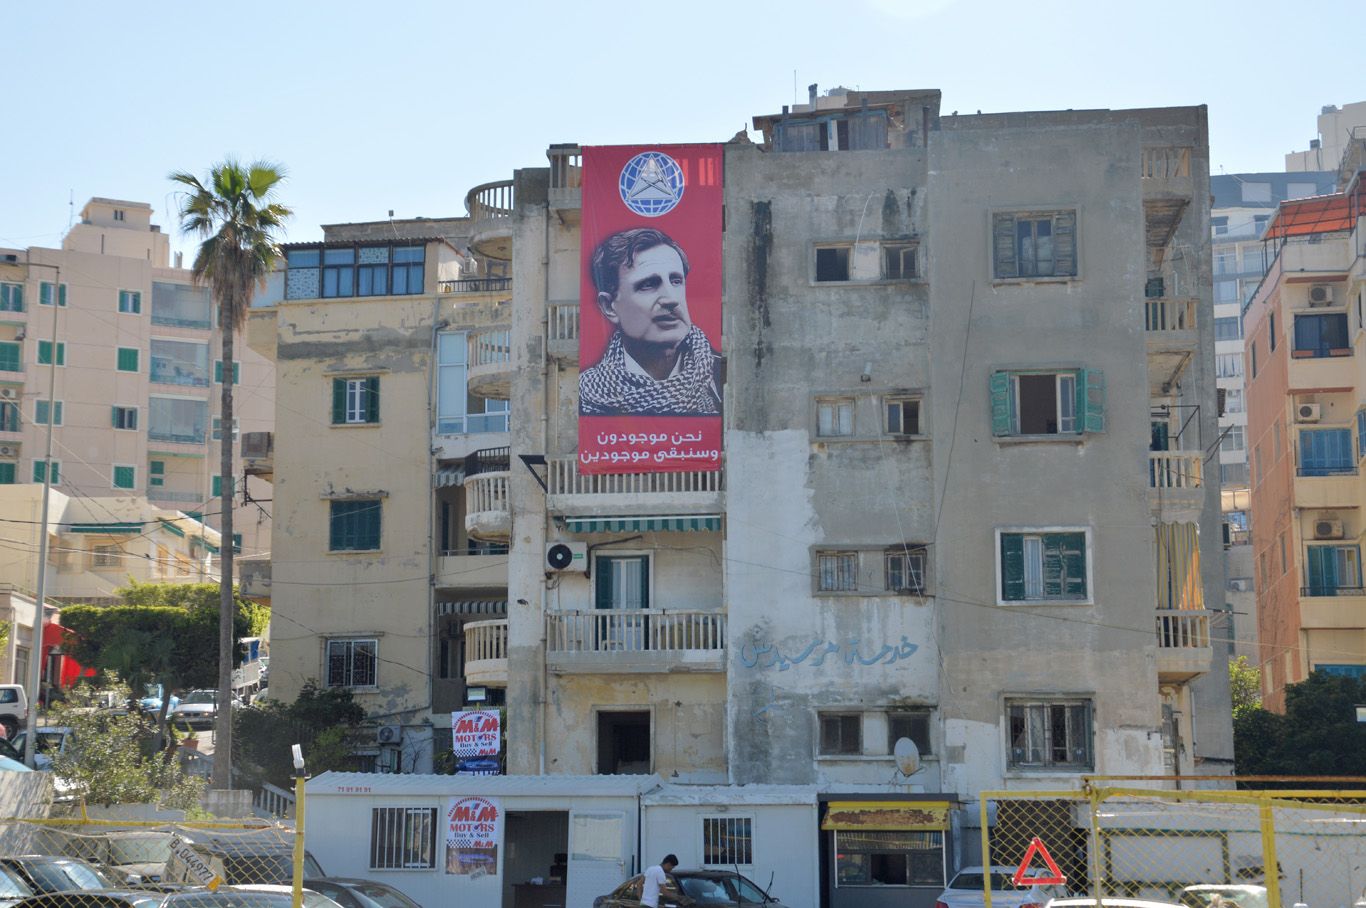 Political propaganda and contrast in Beirut - this is how the worse areas of the city look like